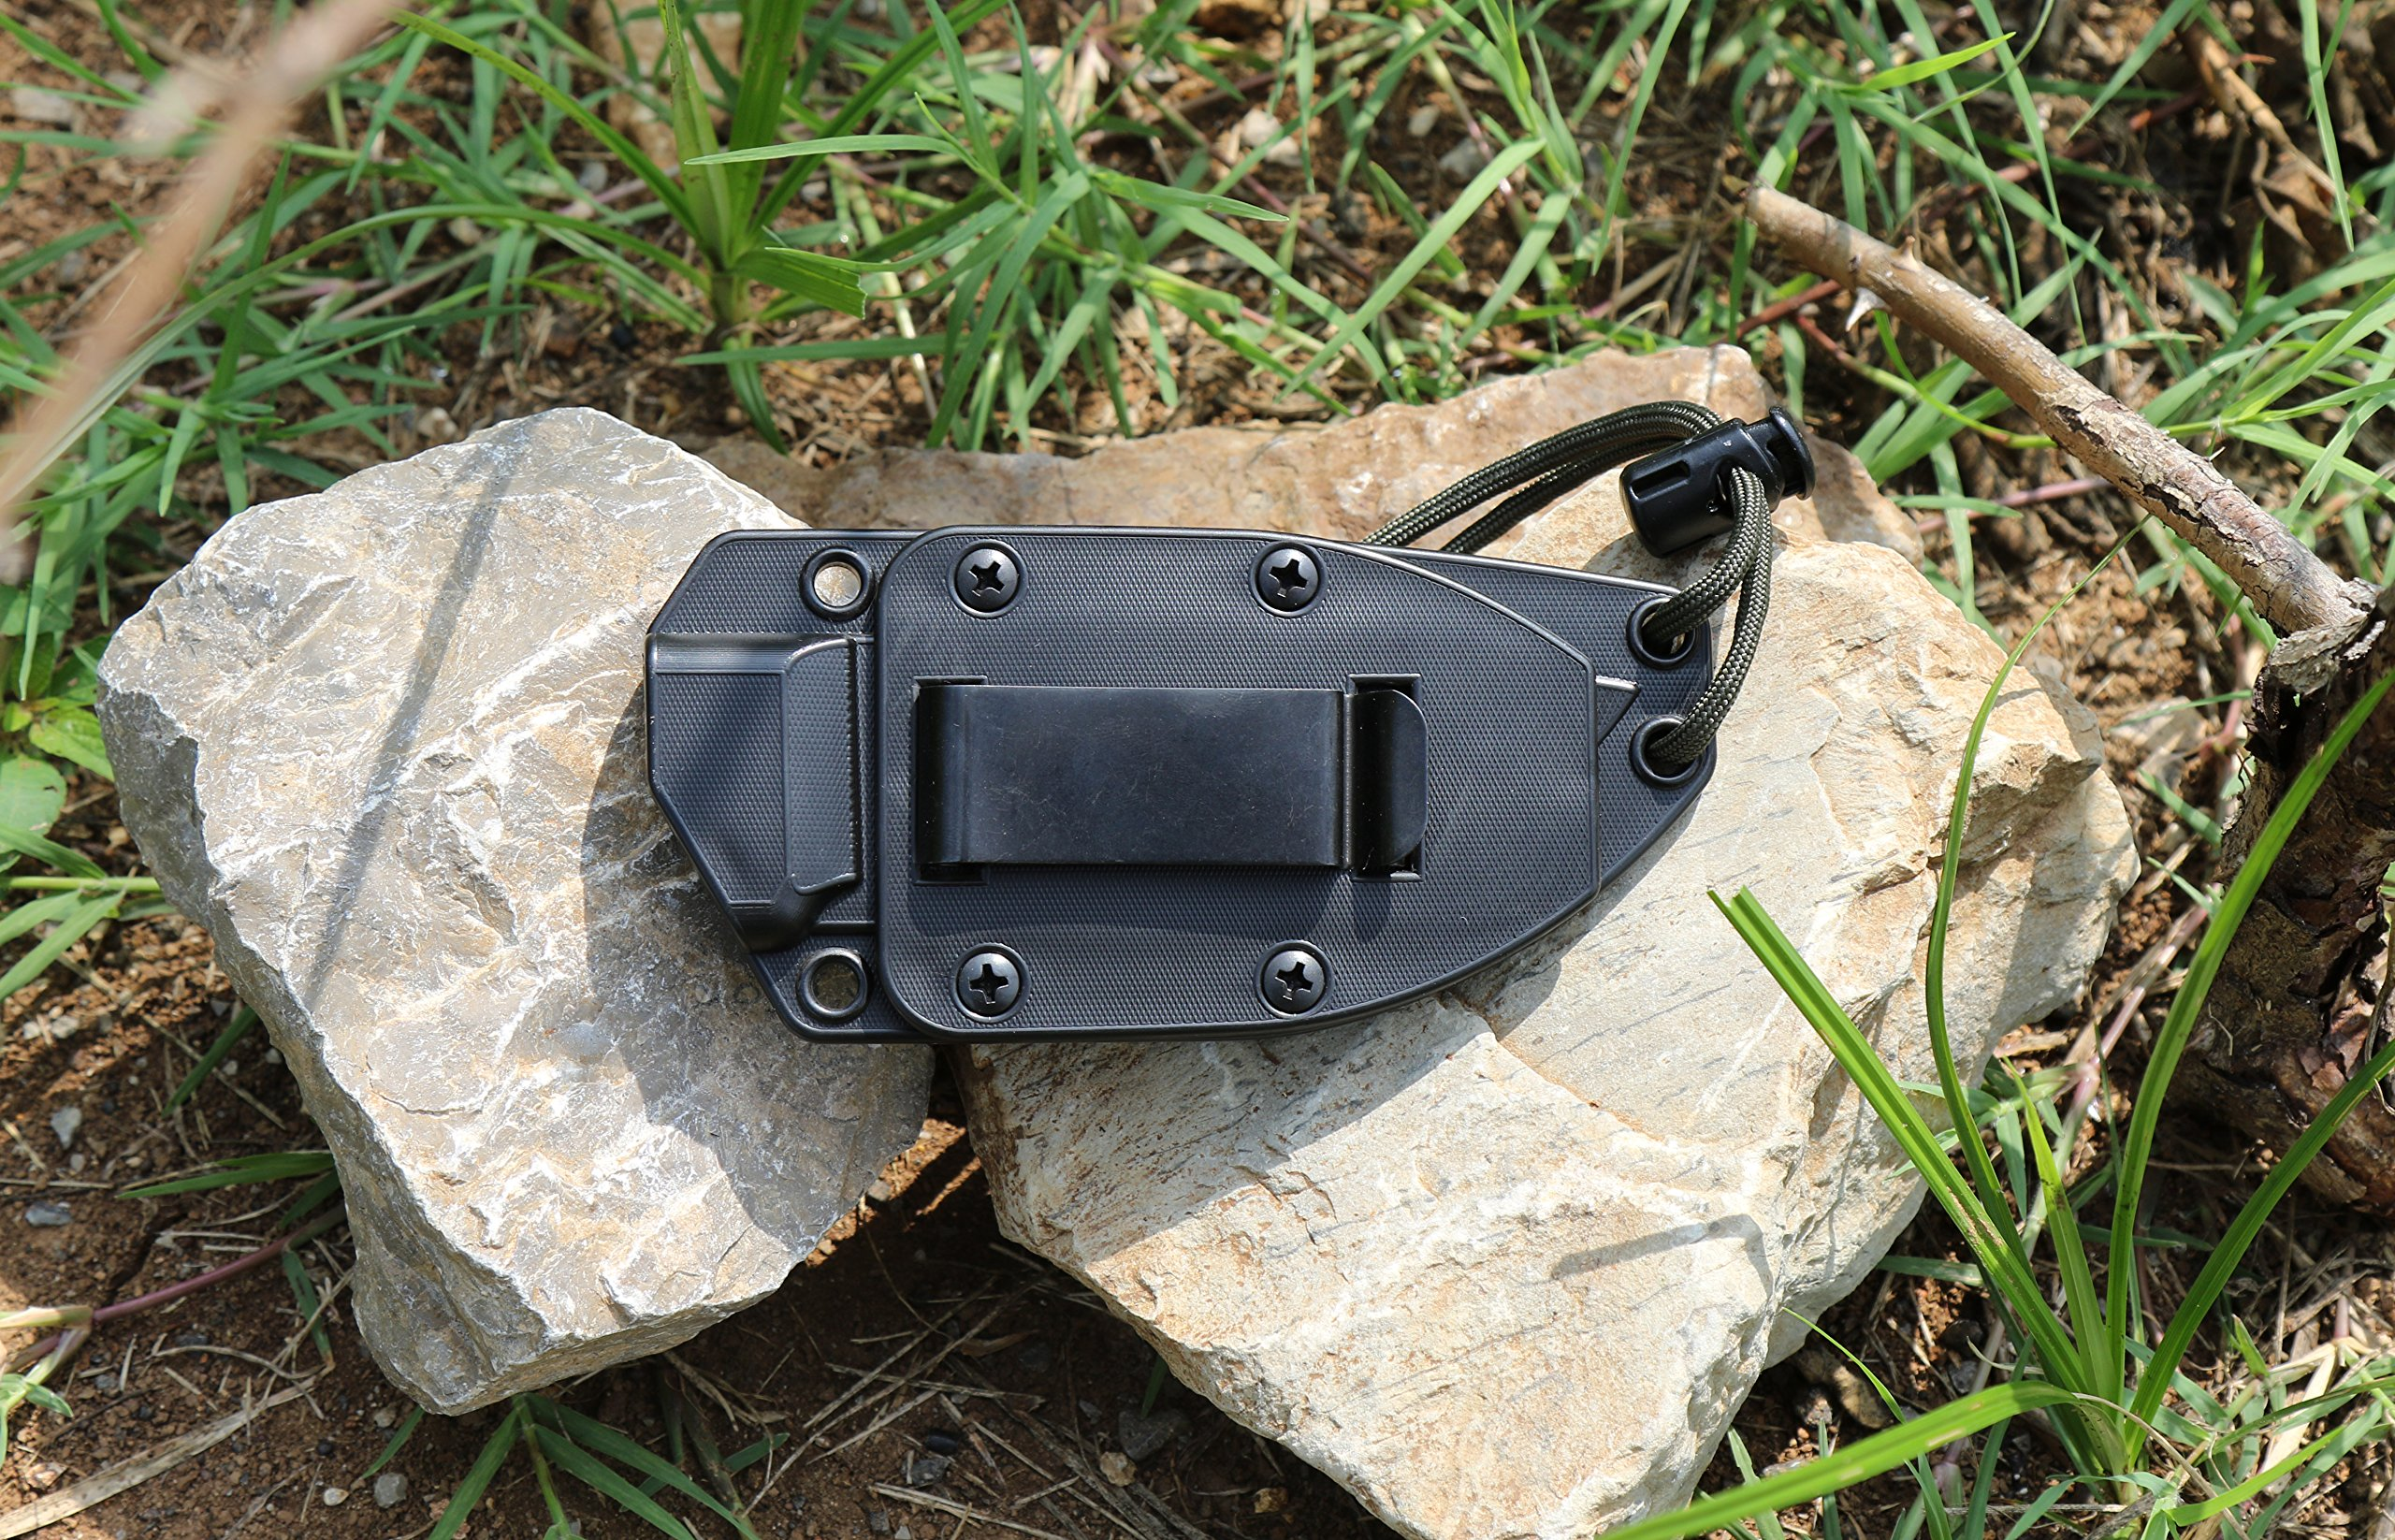 ESEE Knives 3P Fixed Blade Knife with Molded Polymer Sheath by ESEE (Image #6)